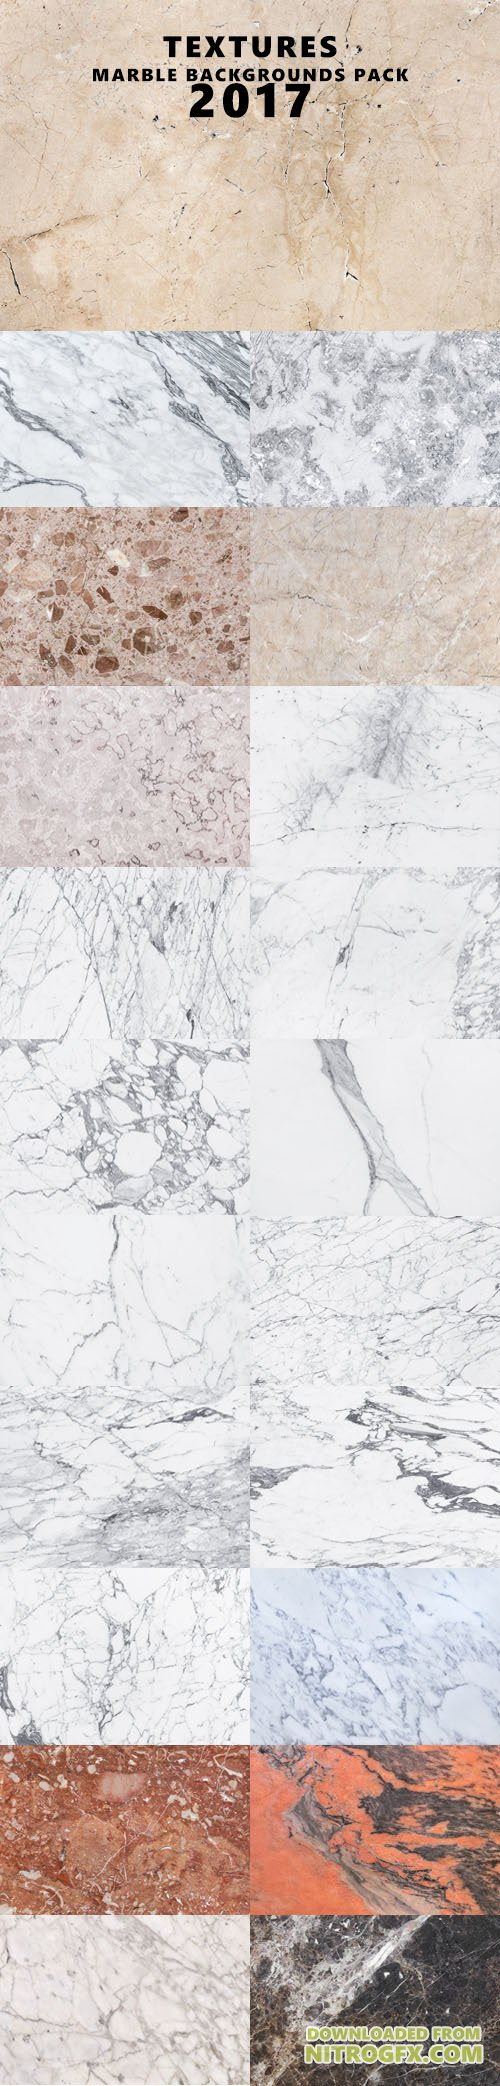 Textures - Marble Backgrounds Pack 2017